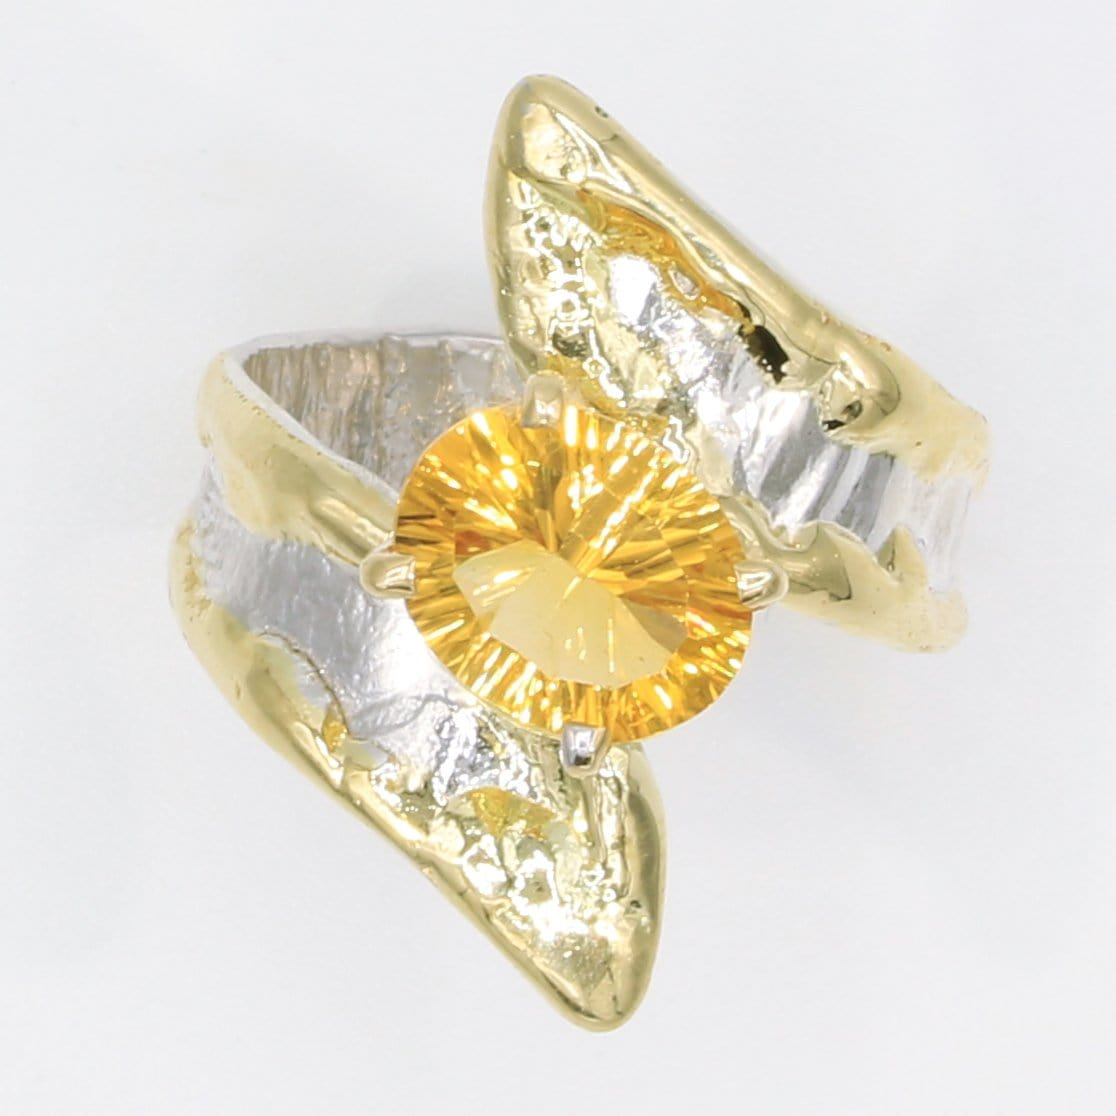 14K Gold & Crystalline Silver Citrine Ring - 35902-Fusion Designs-Renee Taylor Gallery